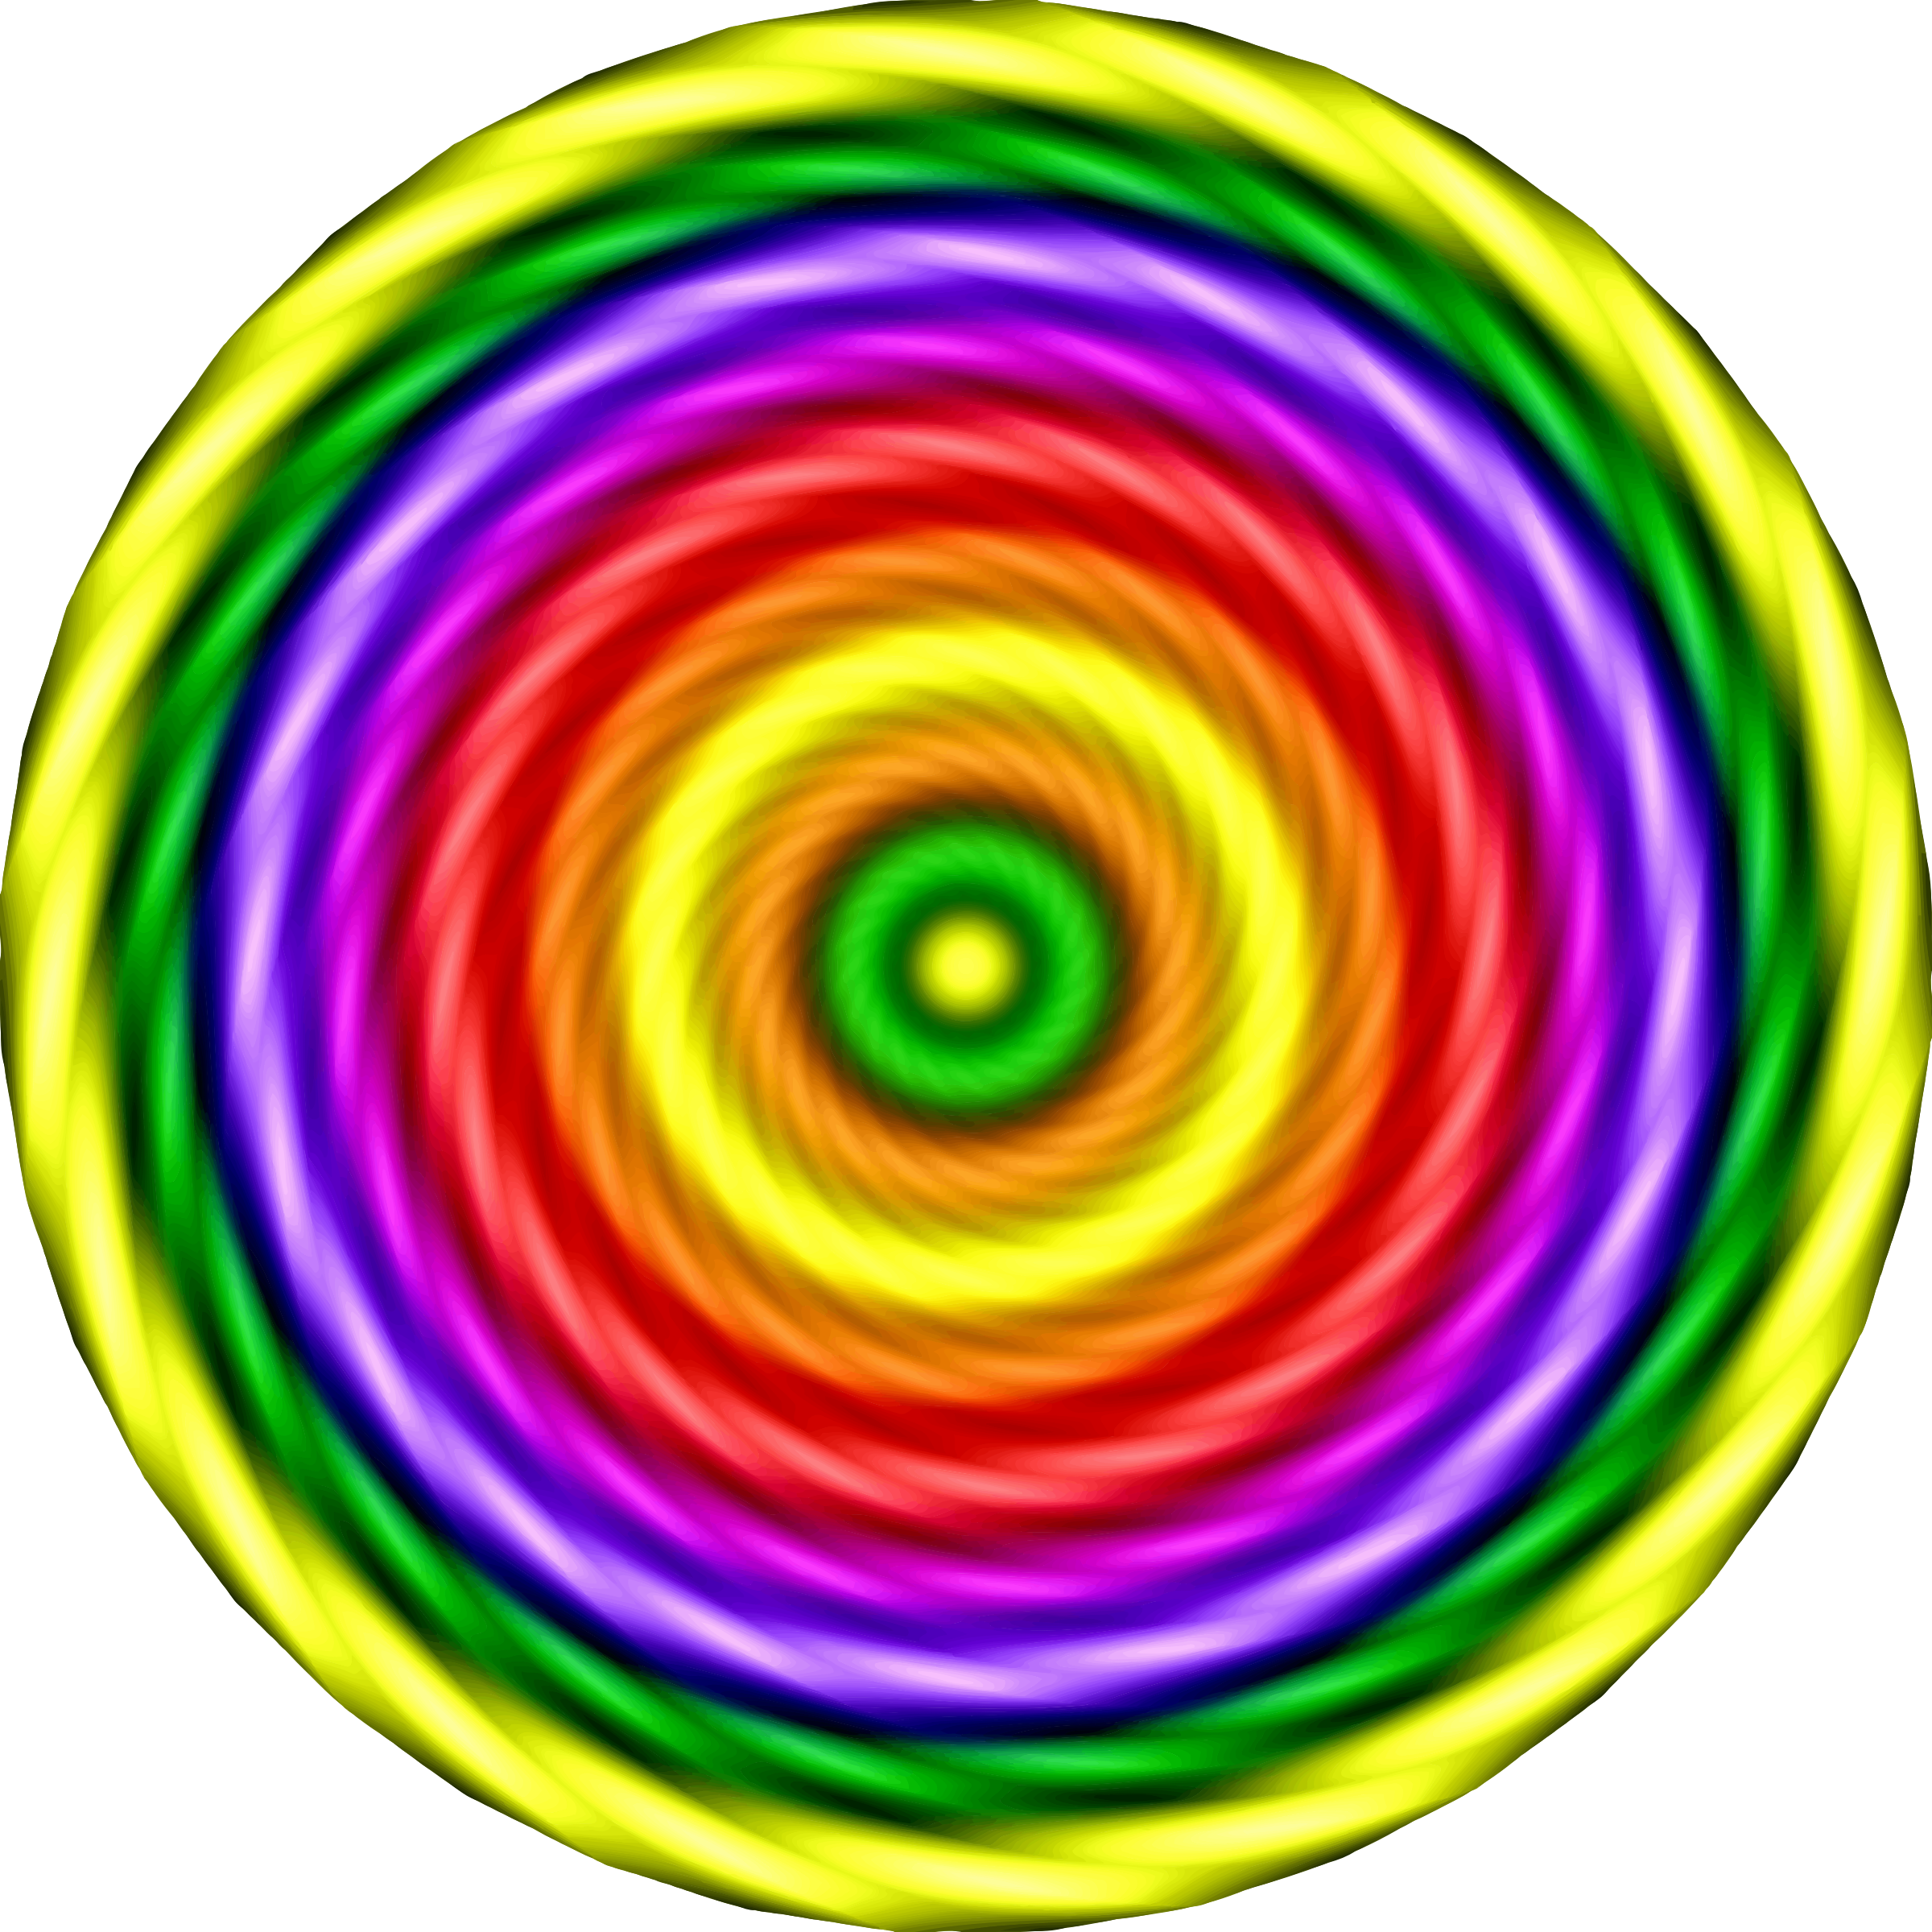 Colourful spiral by Firkin